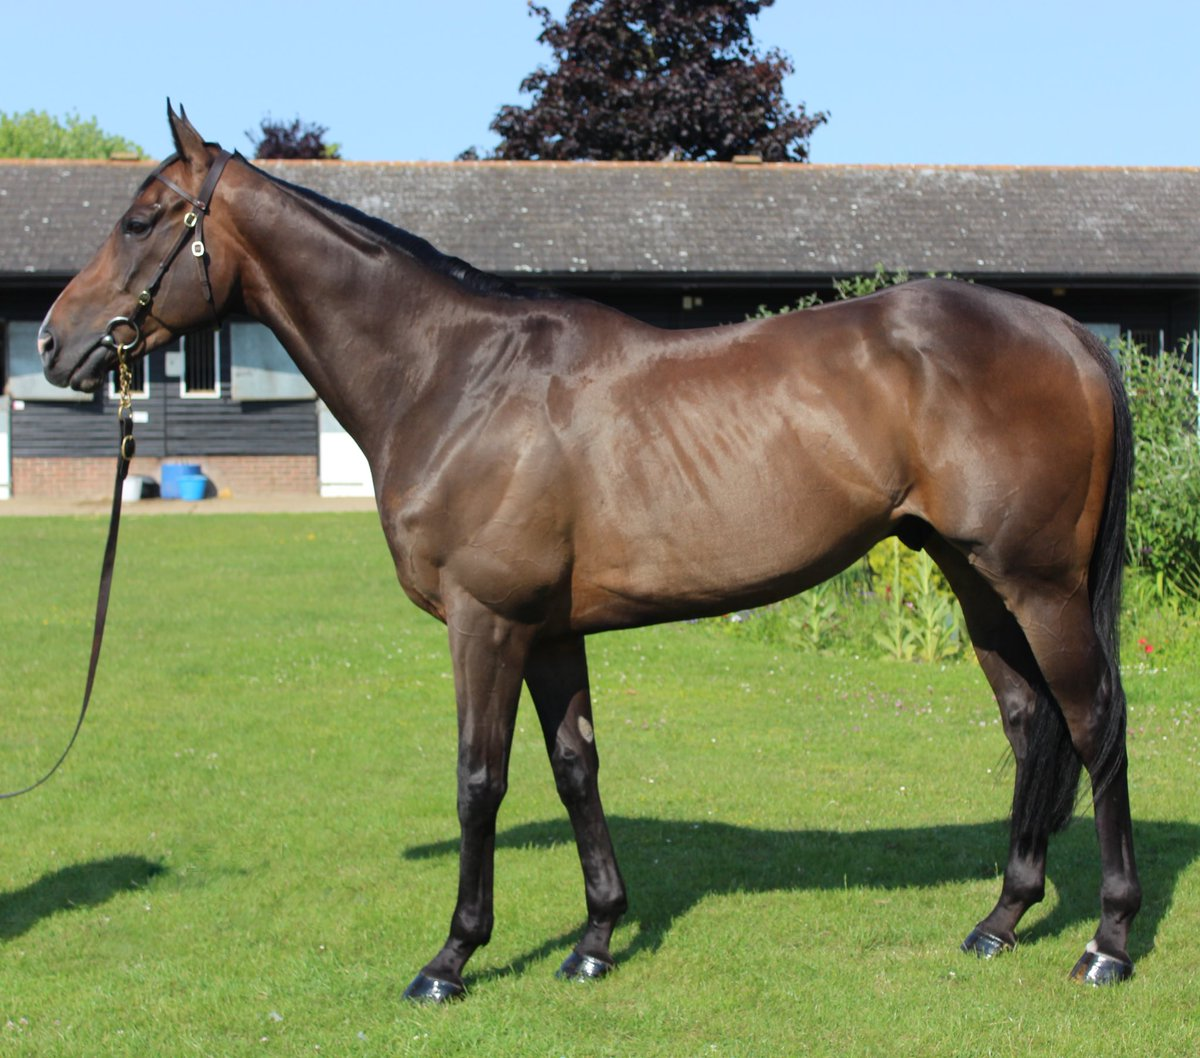 Excited to have our first Pimlico Racing horse in Ireland with @JosephOBrien2! Purchased @Tattersalls1766 yesterday, the 86-rated Lamloom is a talented recruit to run in some of the big handicaps this term. DM for details!